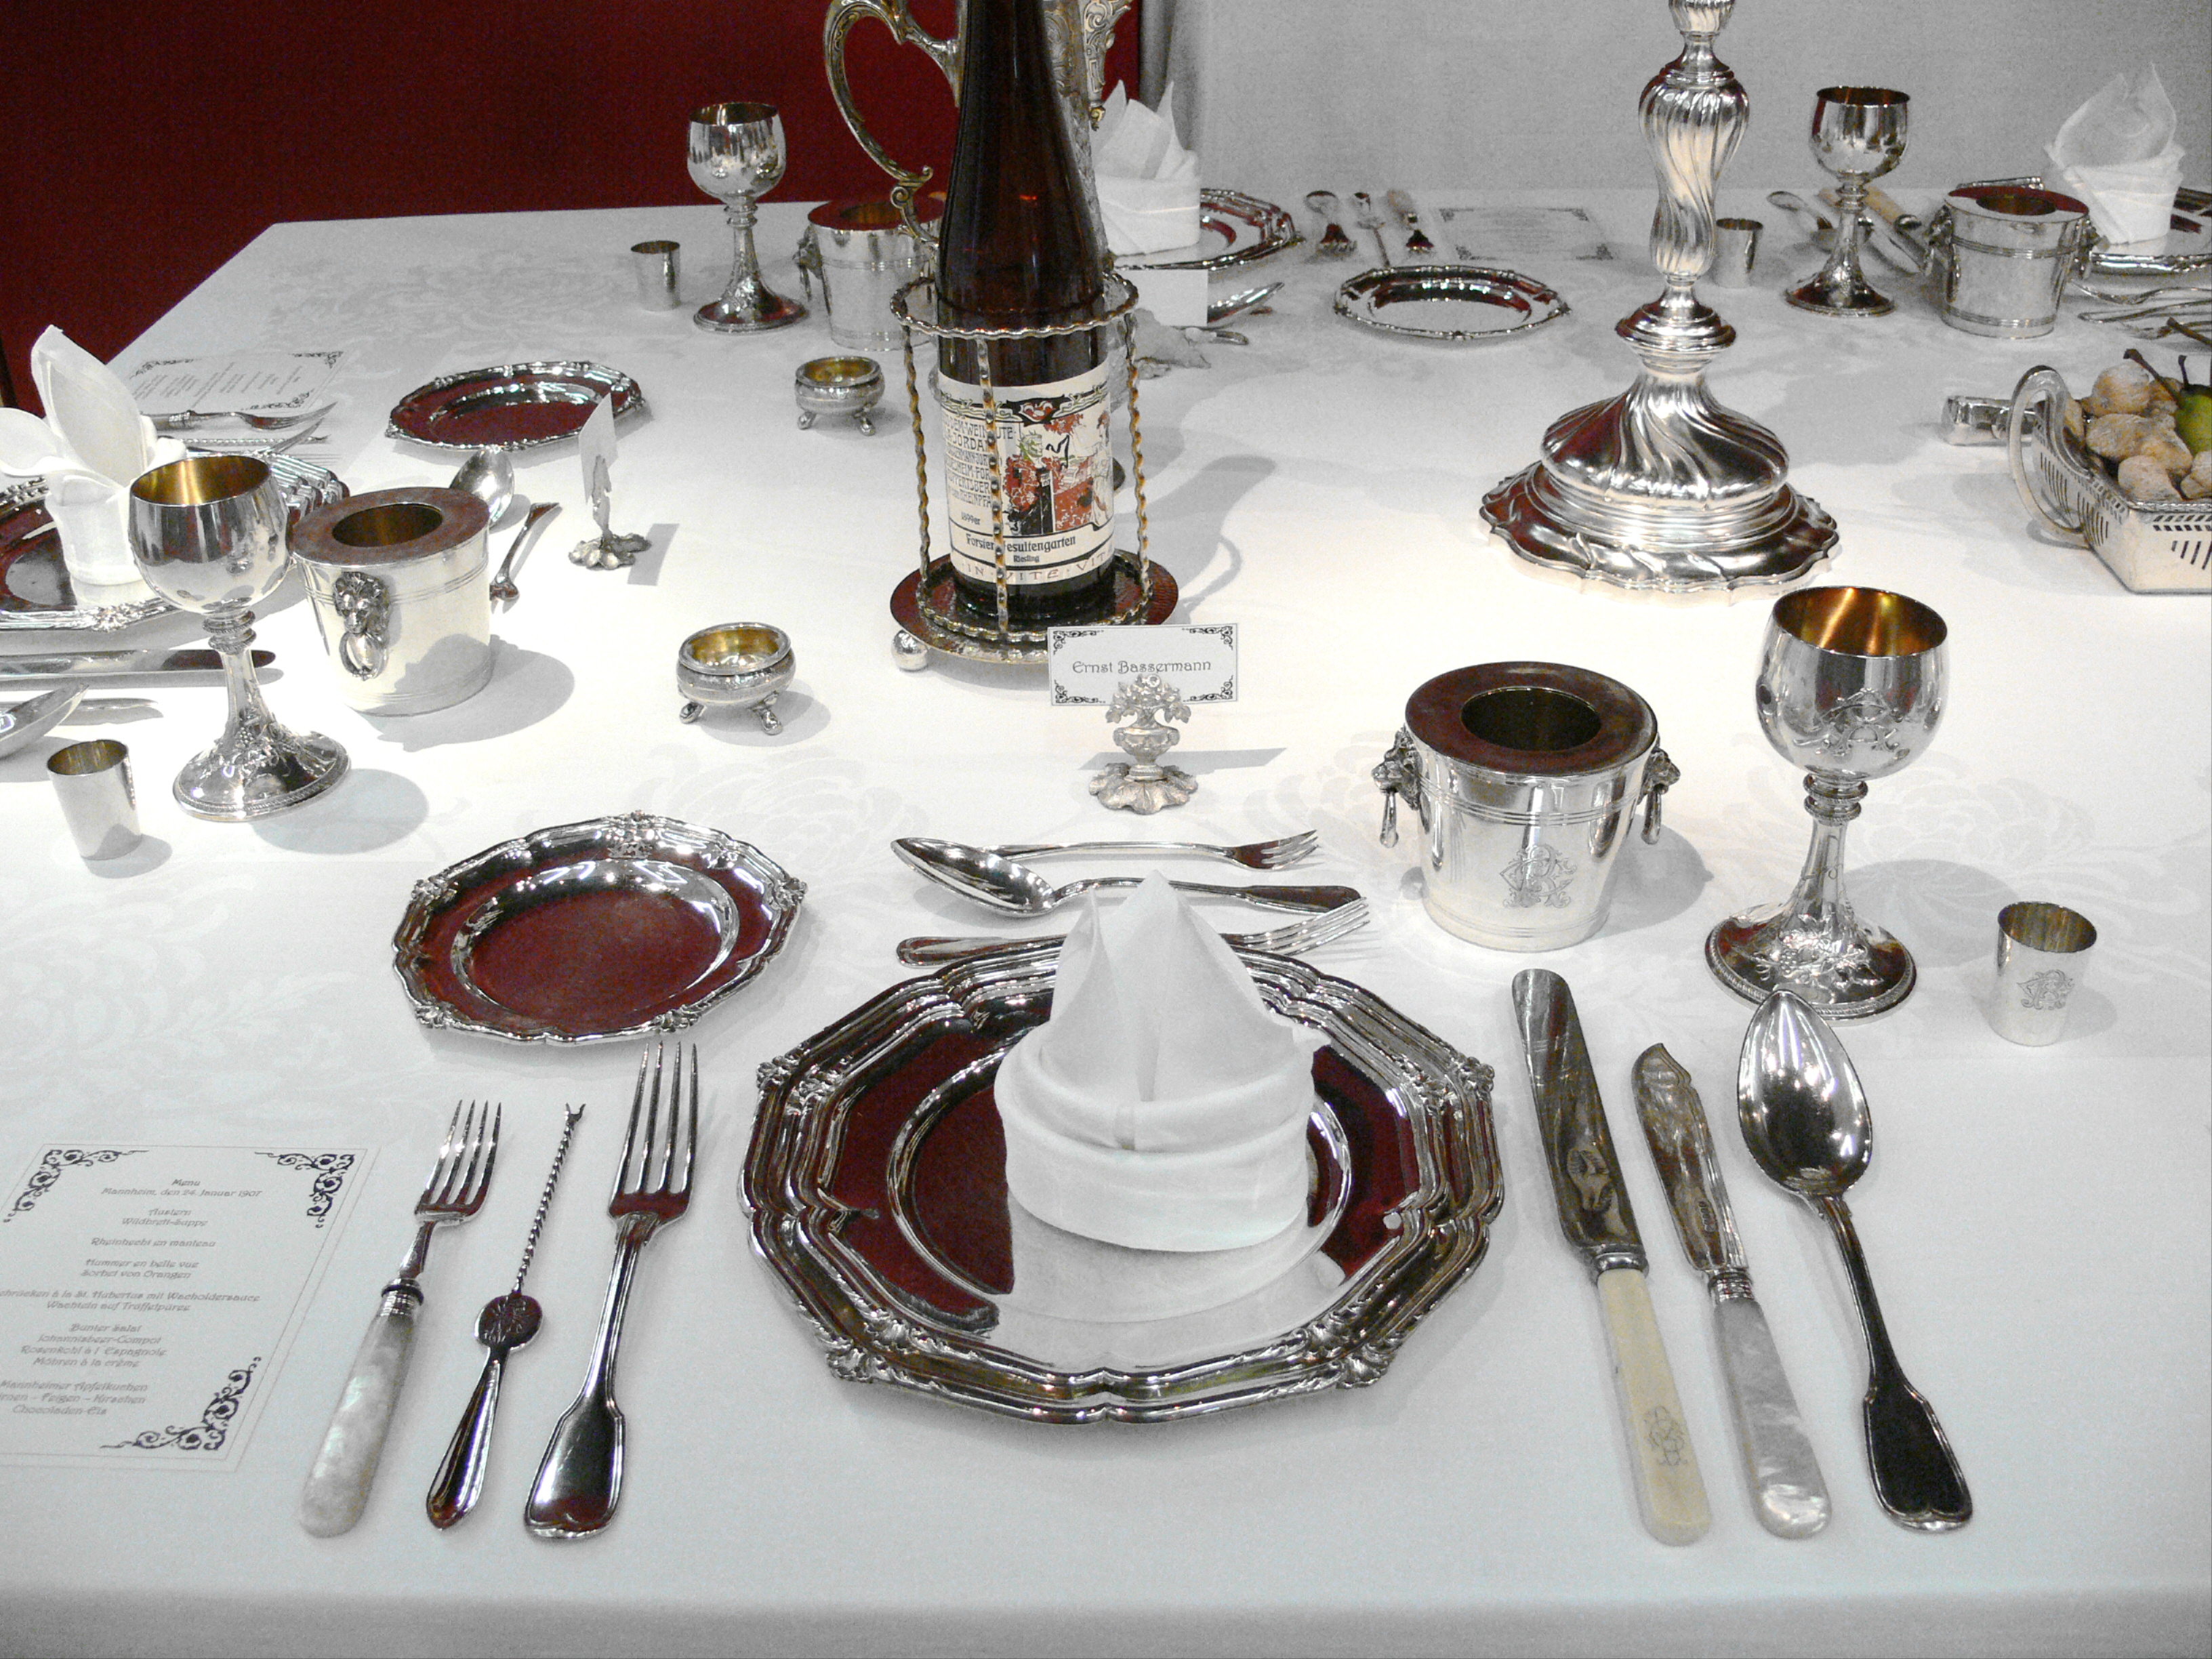 & Table setting - Wikiwand